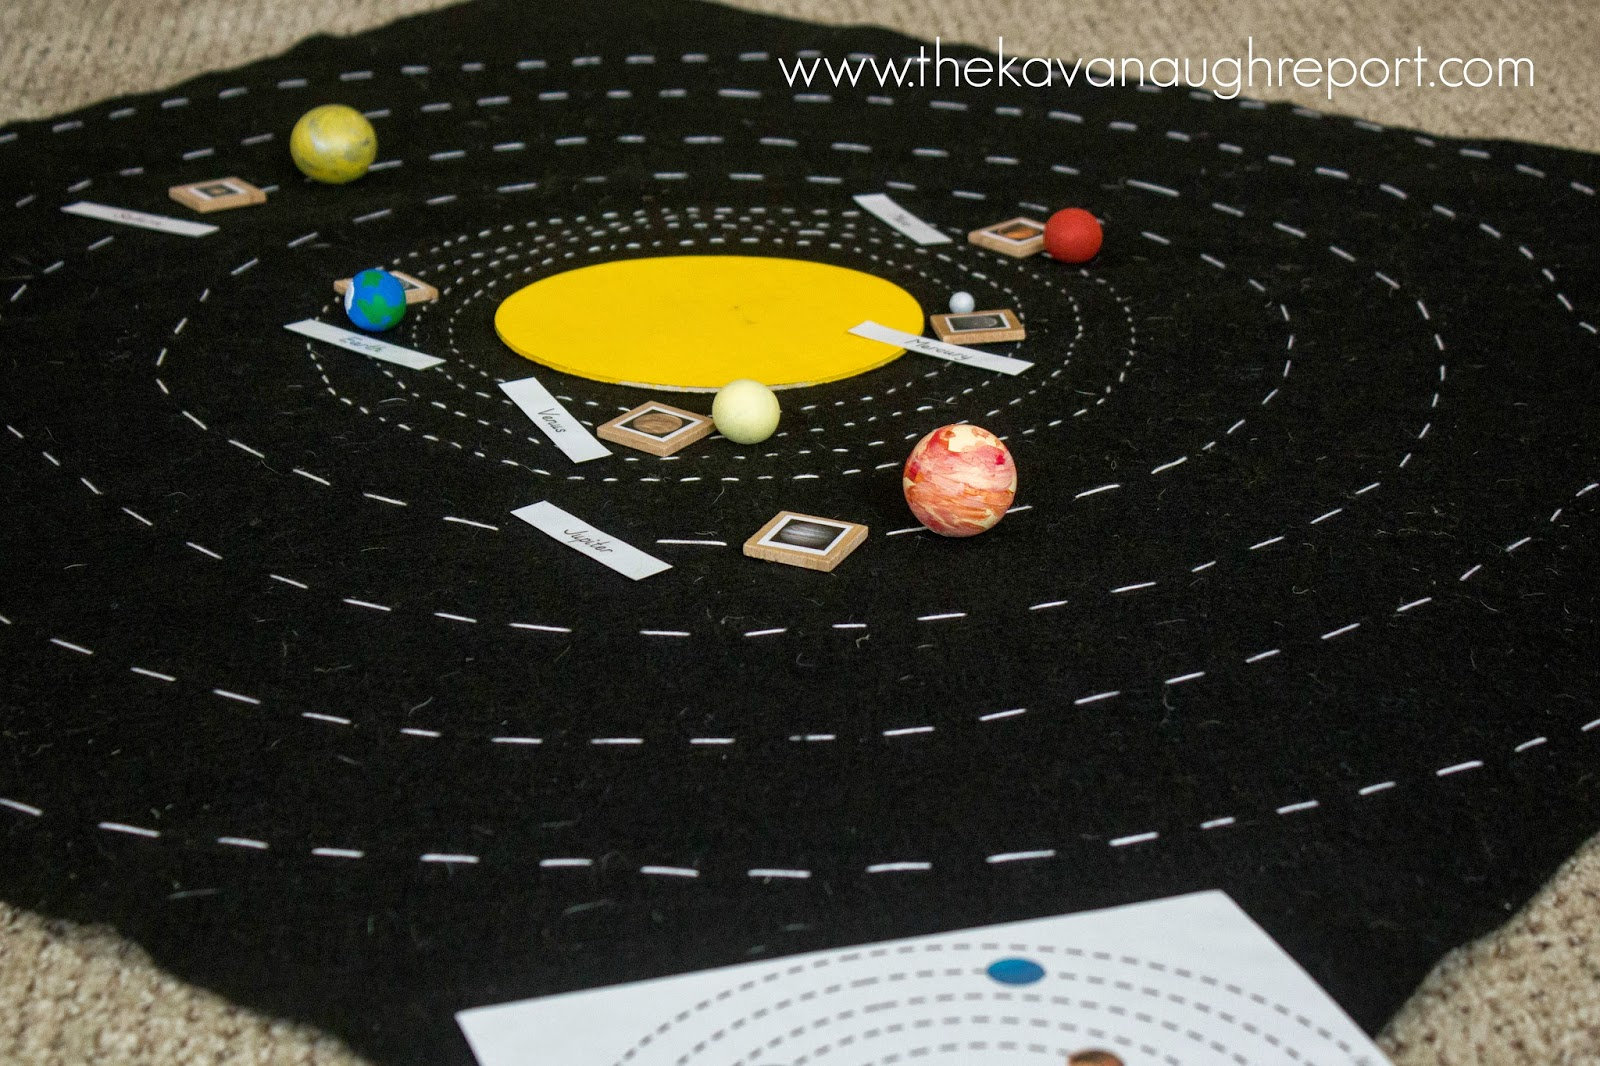 a report on the individual planets of the solar system Invite students to explain their understanding of the solar system and any facts about the sun or individual planets that they may have learned about previously.